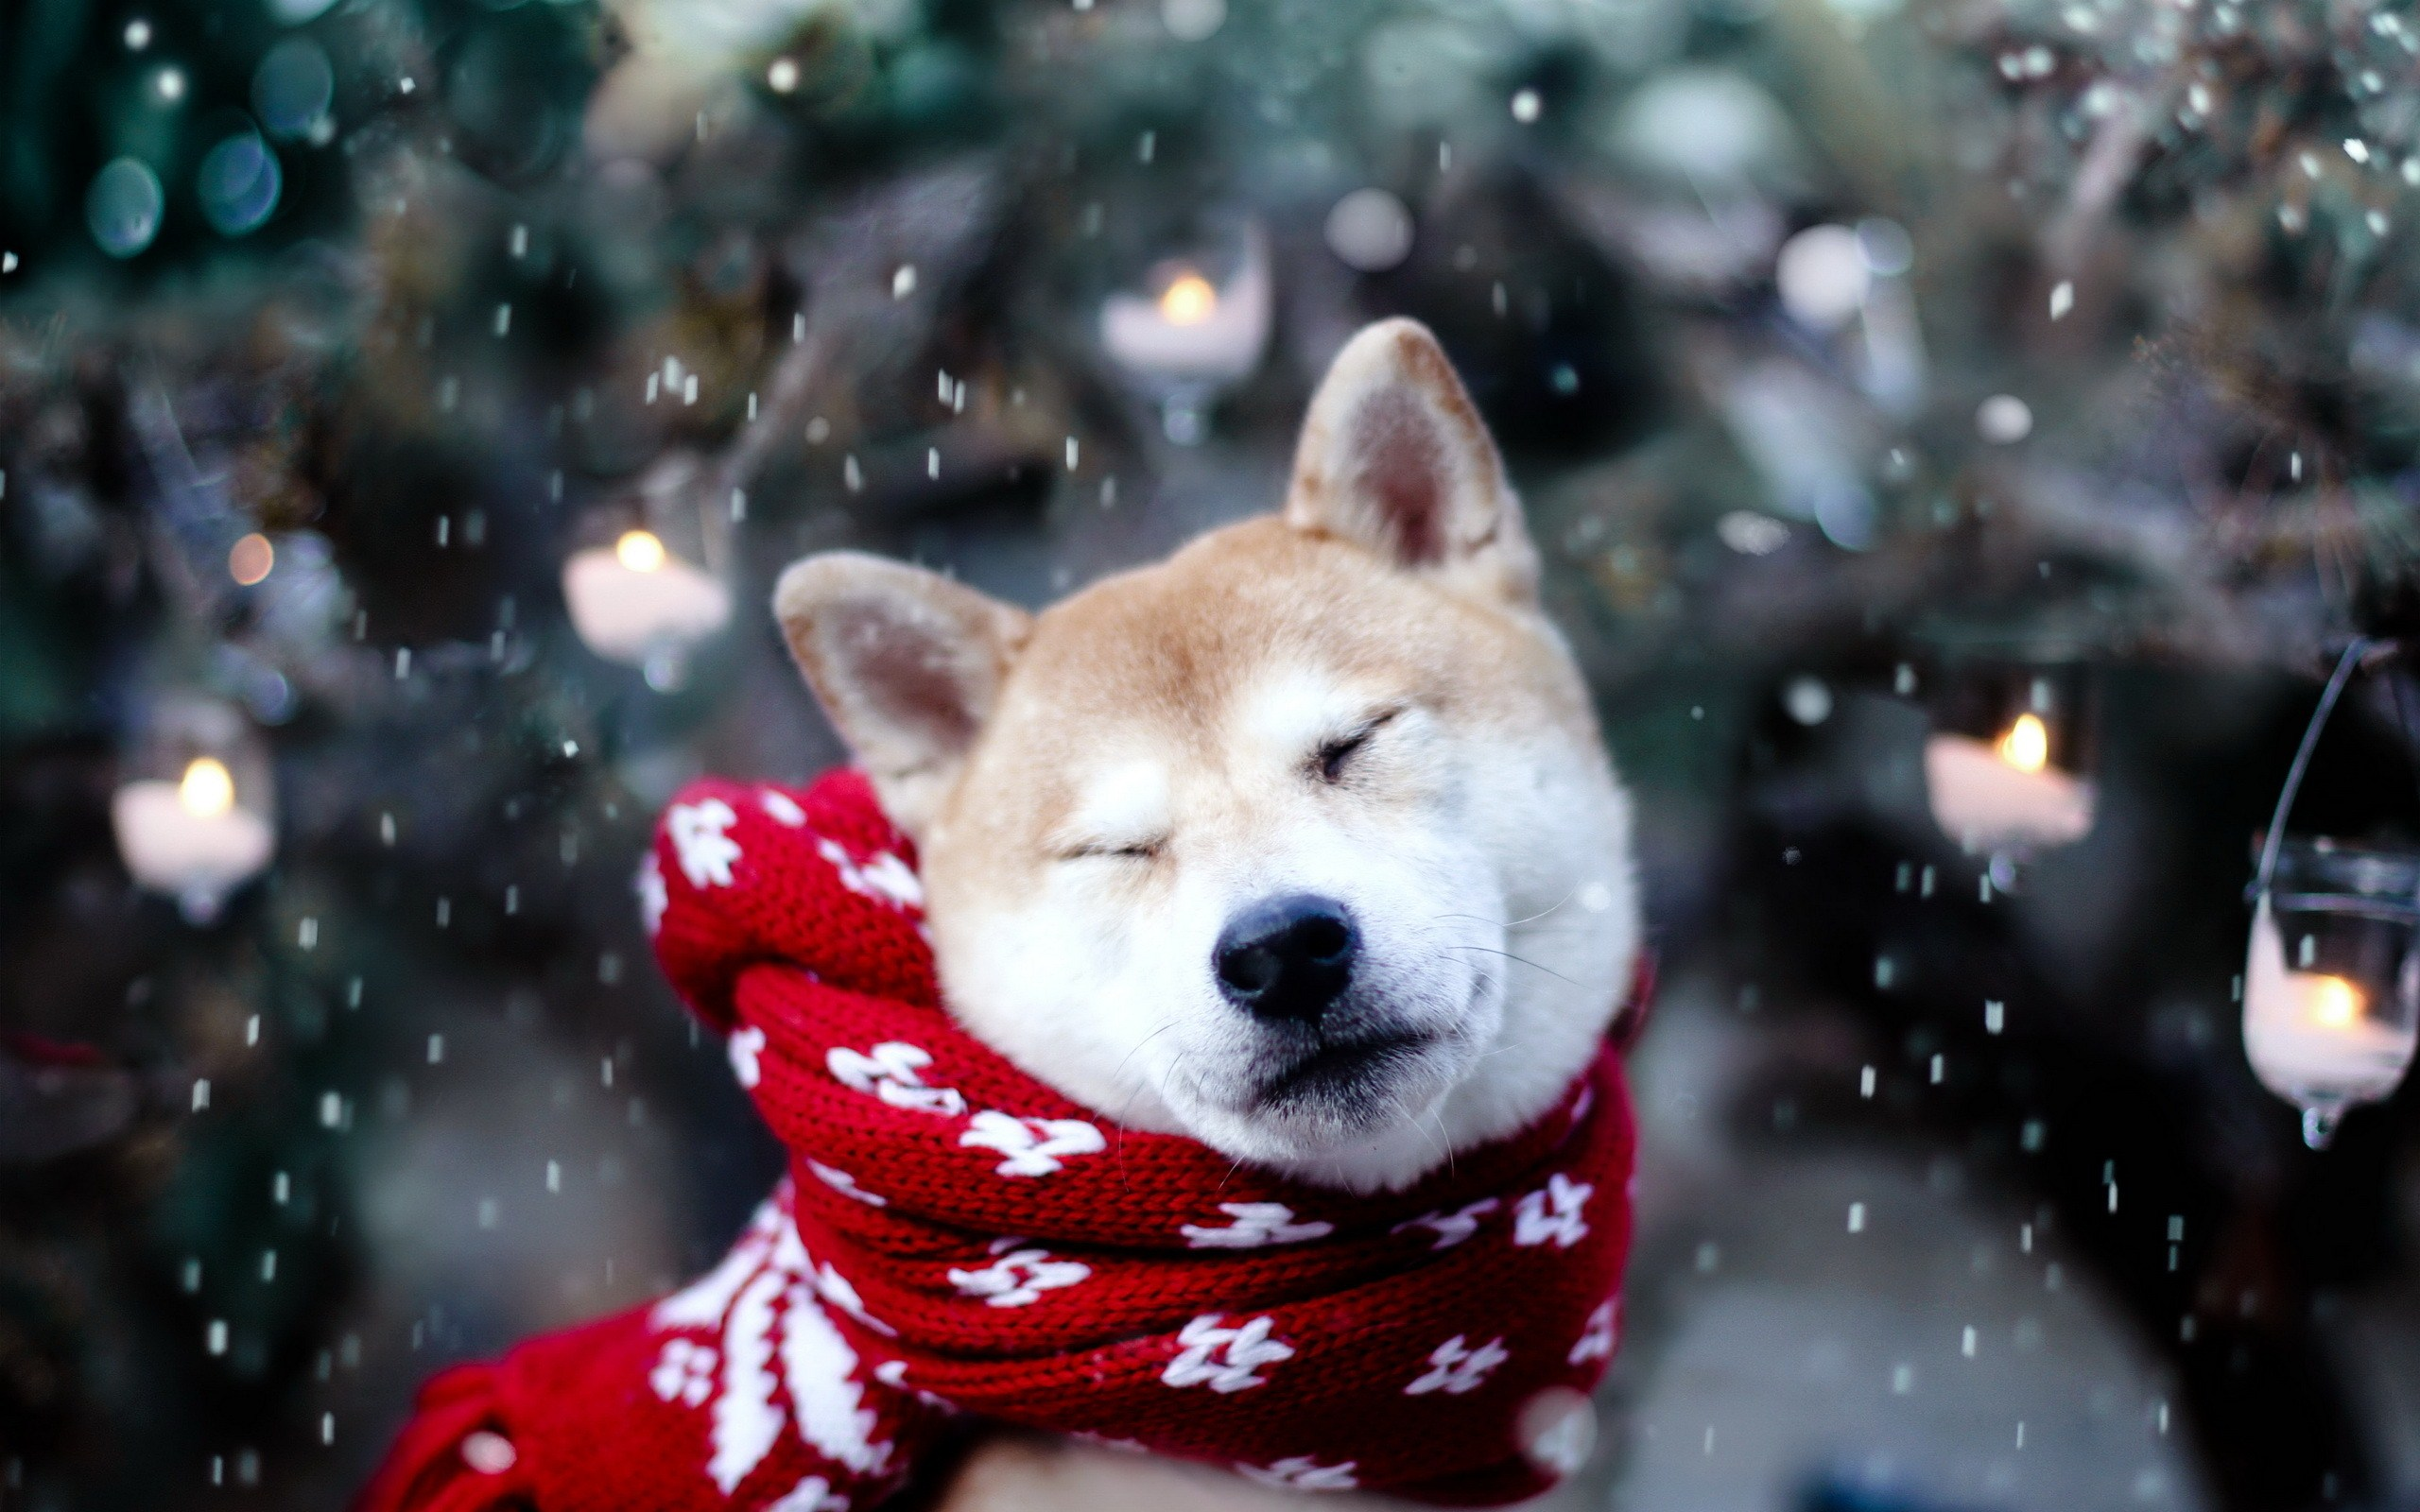 cute dog winter snowflakes animal photos mood wallpaper 2560x1600